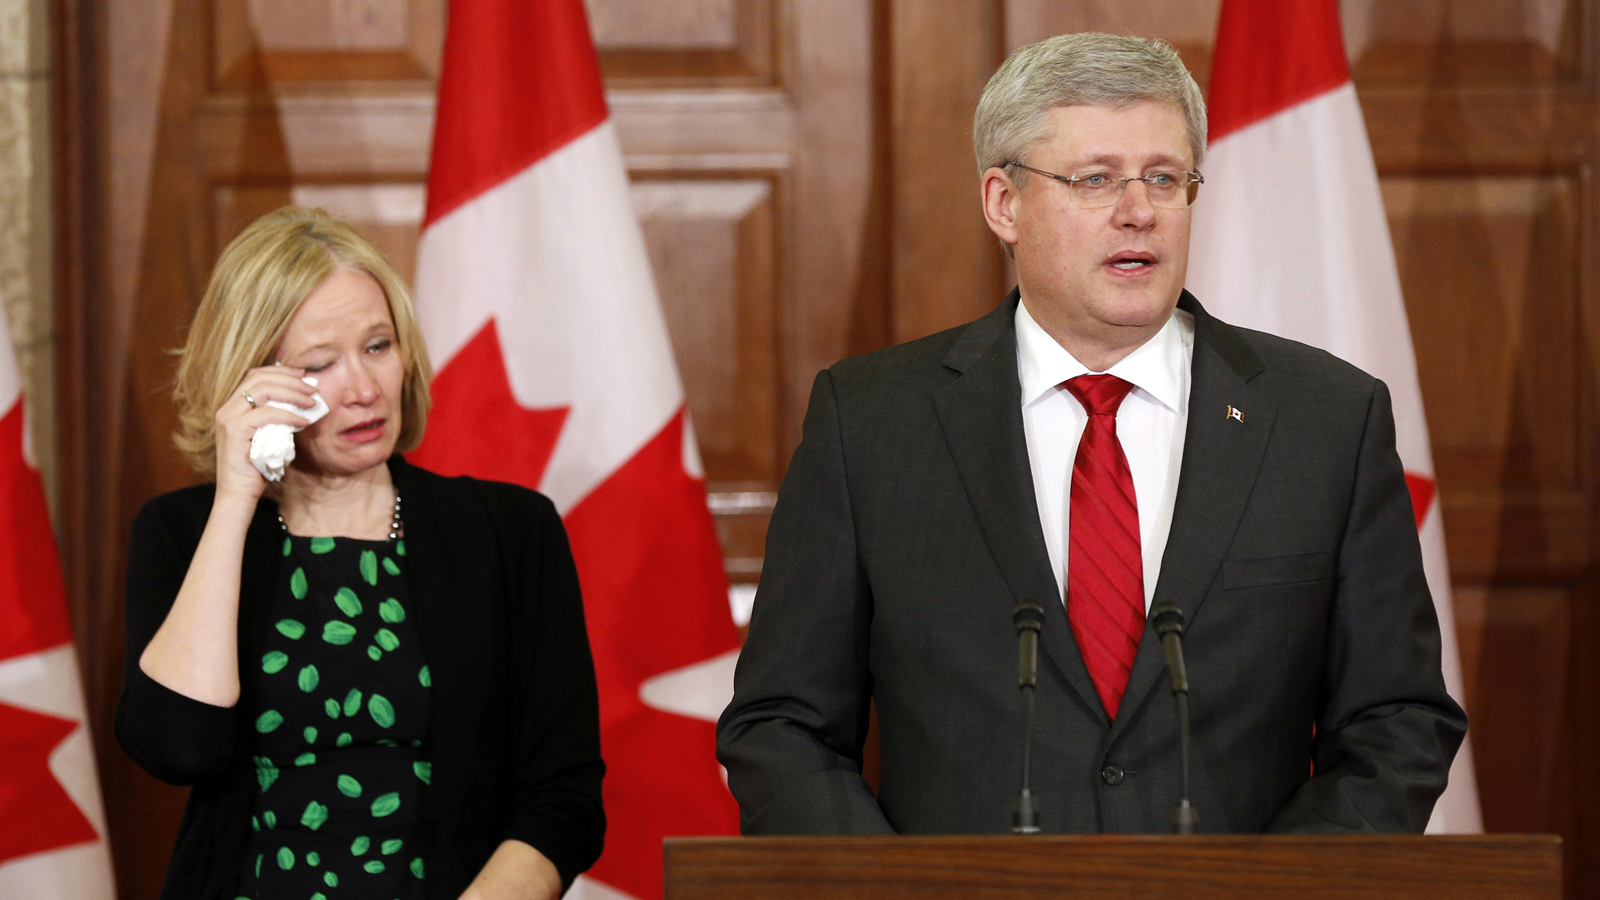 PM Stephen Harper and his wife Laureen take part in a news conference following the news of former Finance Minister Flaherty's death on Parliament Hill in Ottawa